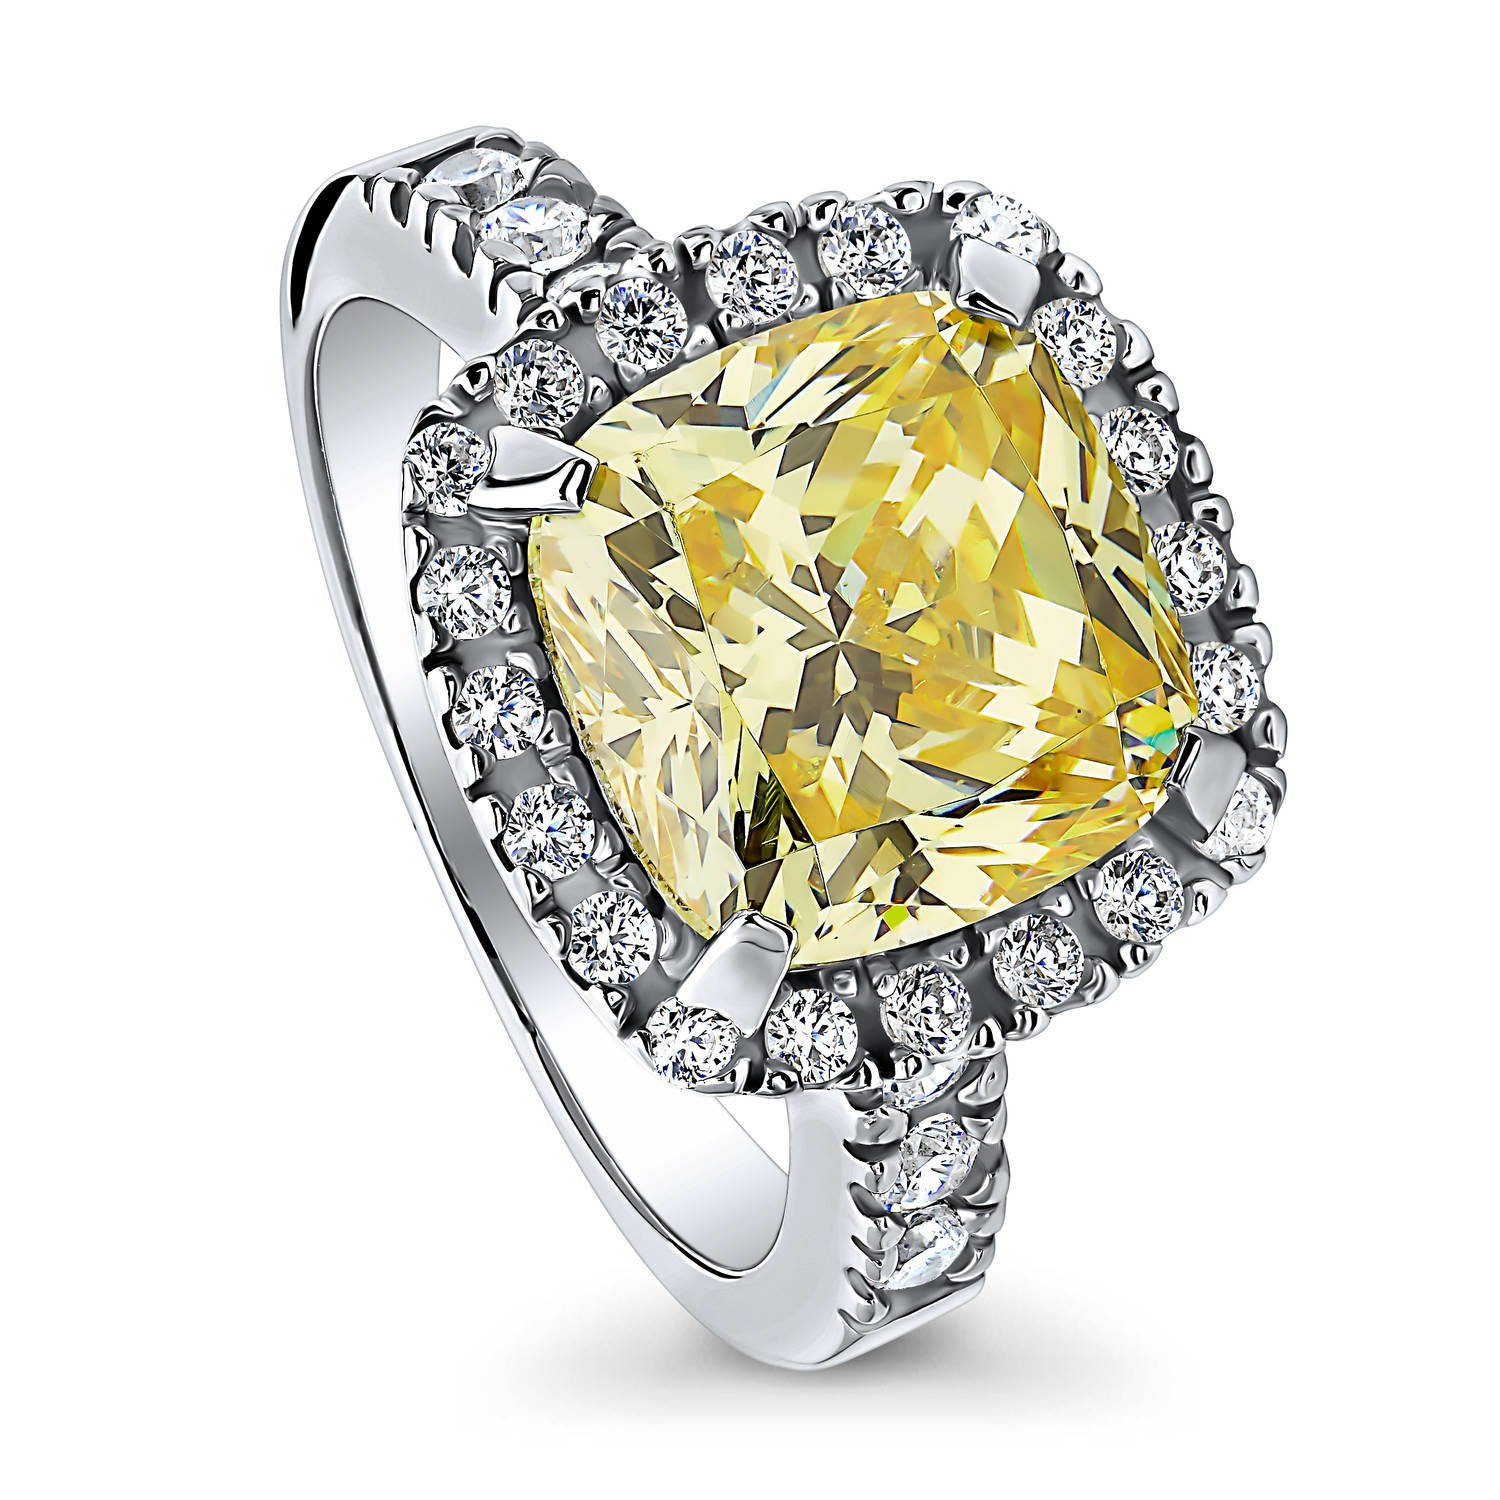 BERRICLE Rhodium Plated Sterling Silver Cushion Cut Cubic Zirconia CZ Halo Engagement Ring Size 7